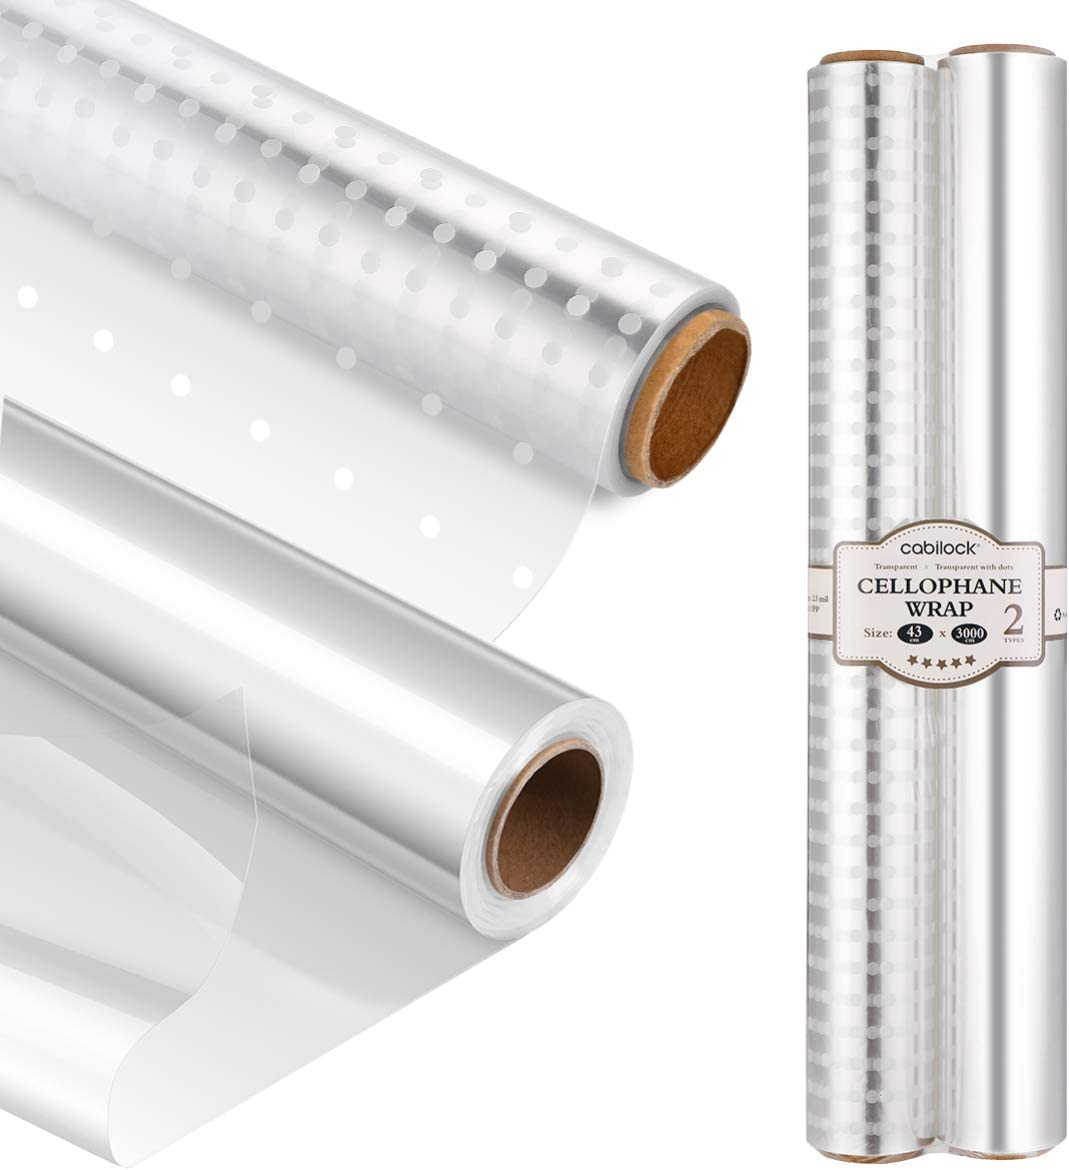 Cabilock Clear Cellophane Wrap Roll 100 Feet Long 17 Inches Wide Transparent Gift Wrap White Dot Florist Paper Wrapper for Baskets Gifts Flowers Food Safe Cello Rolls (2 Pack)